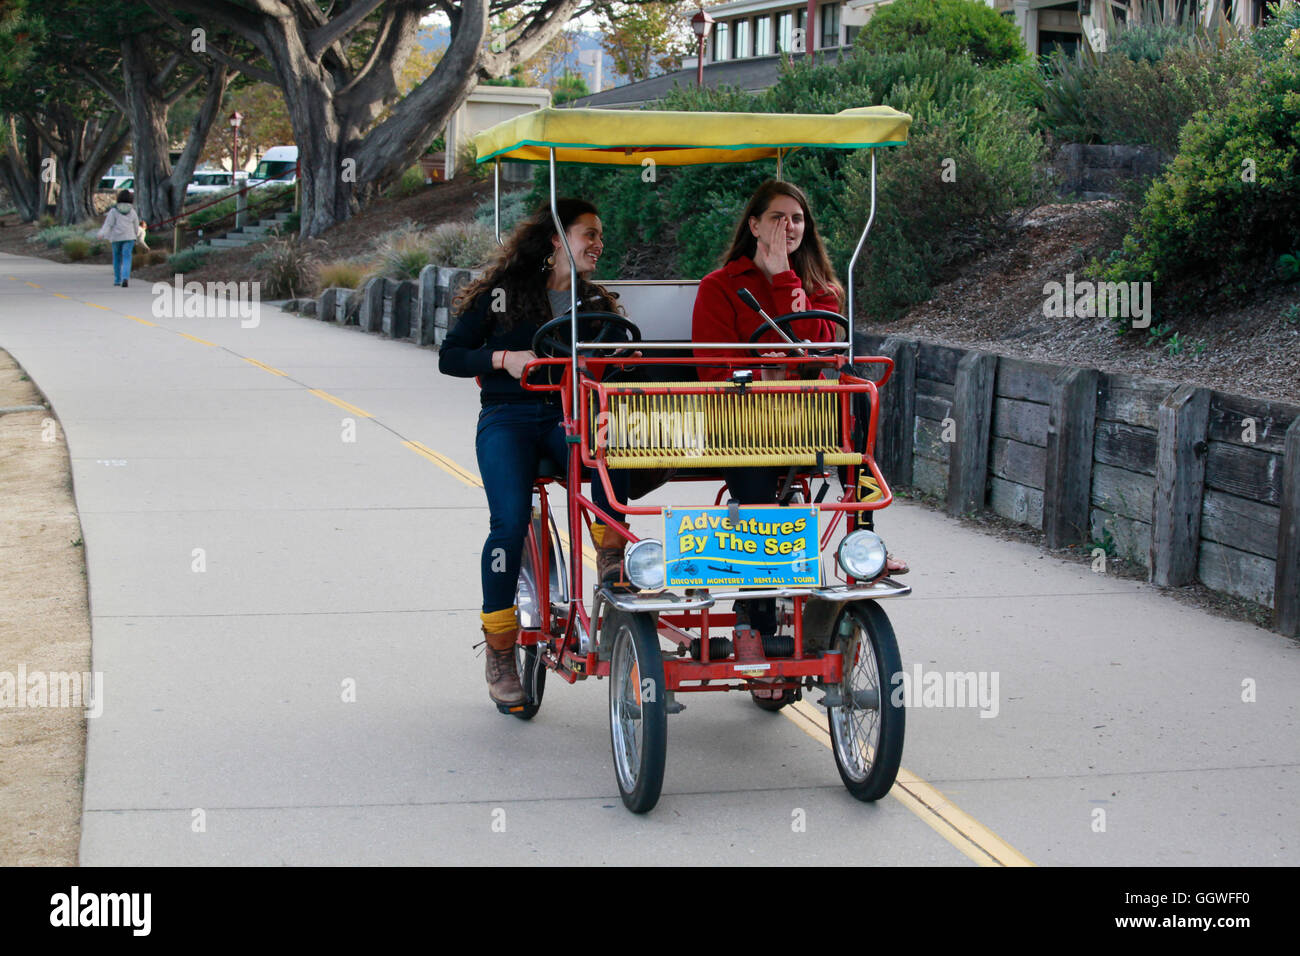 Bicycles for two are rented from ADVENTURES BY THE SEA and uses on the bike path - MONTEREY, CALIFORNIA - Stock Image